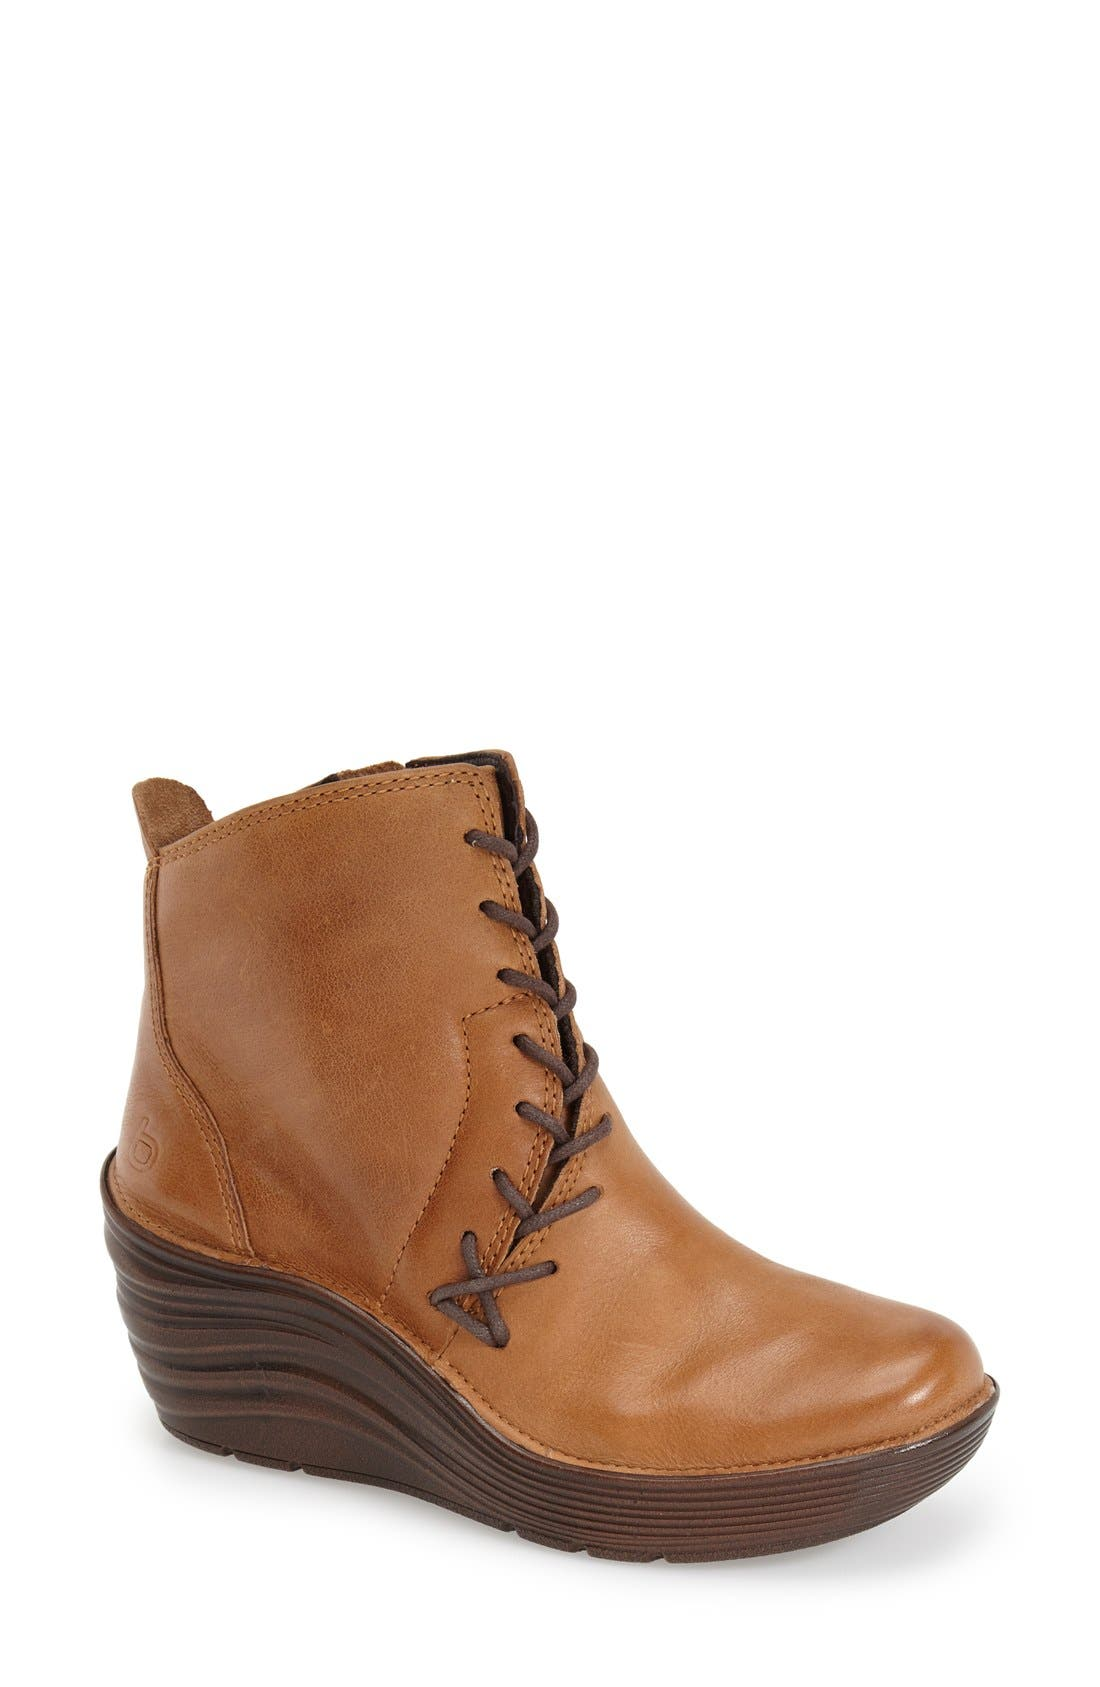 'Corset' Bootie,                             Main thumbnail 1, color,                             CORK OILED LEATHER